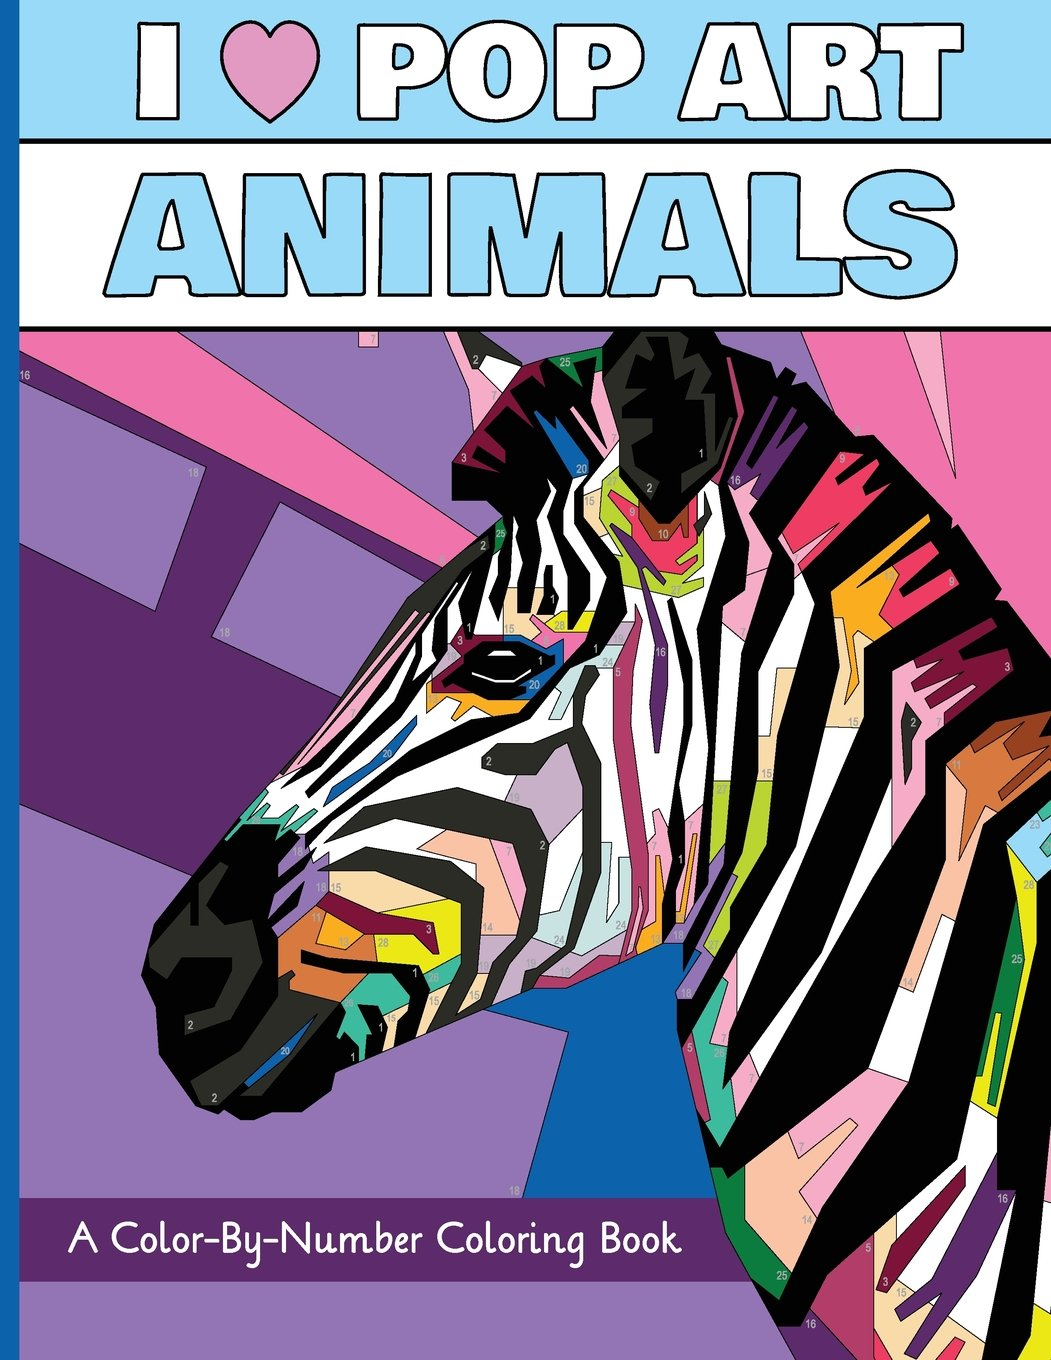 Amazoncom I Heart Pop Art Animals A Color By Number Coloring